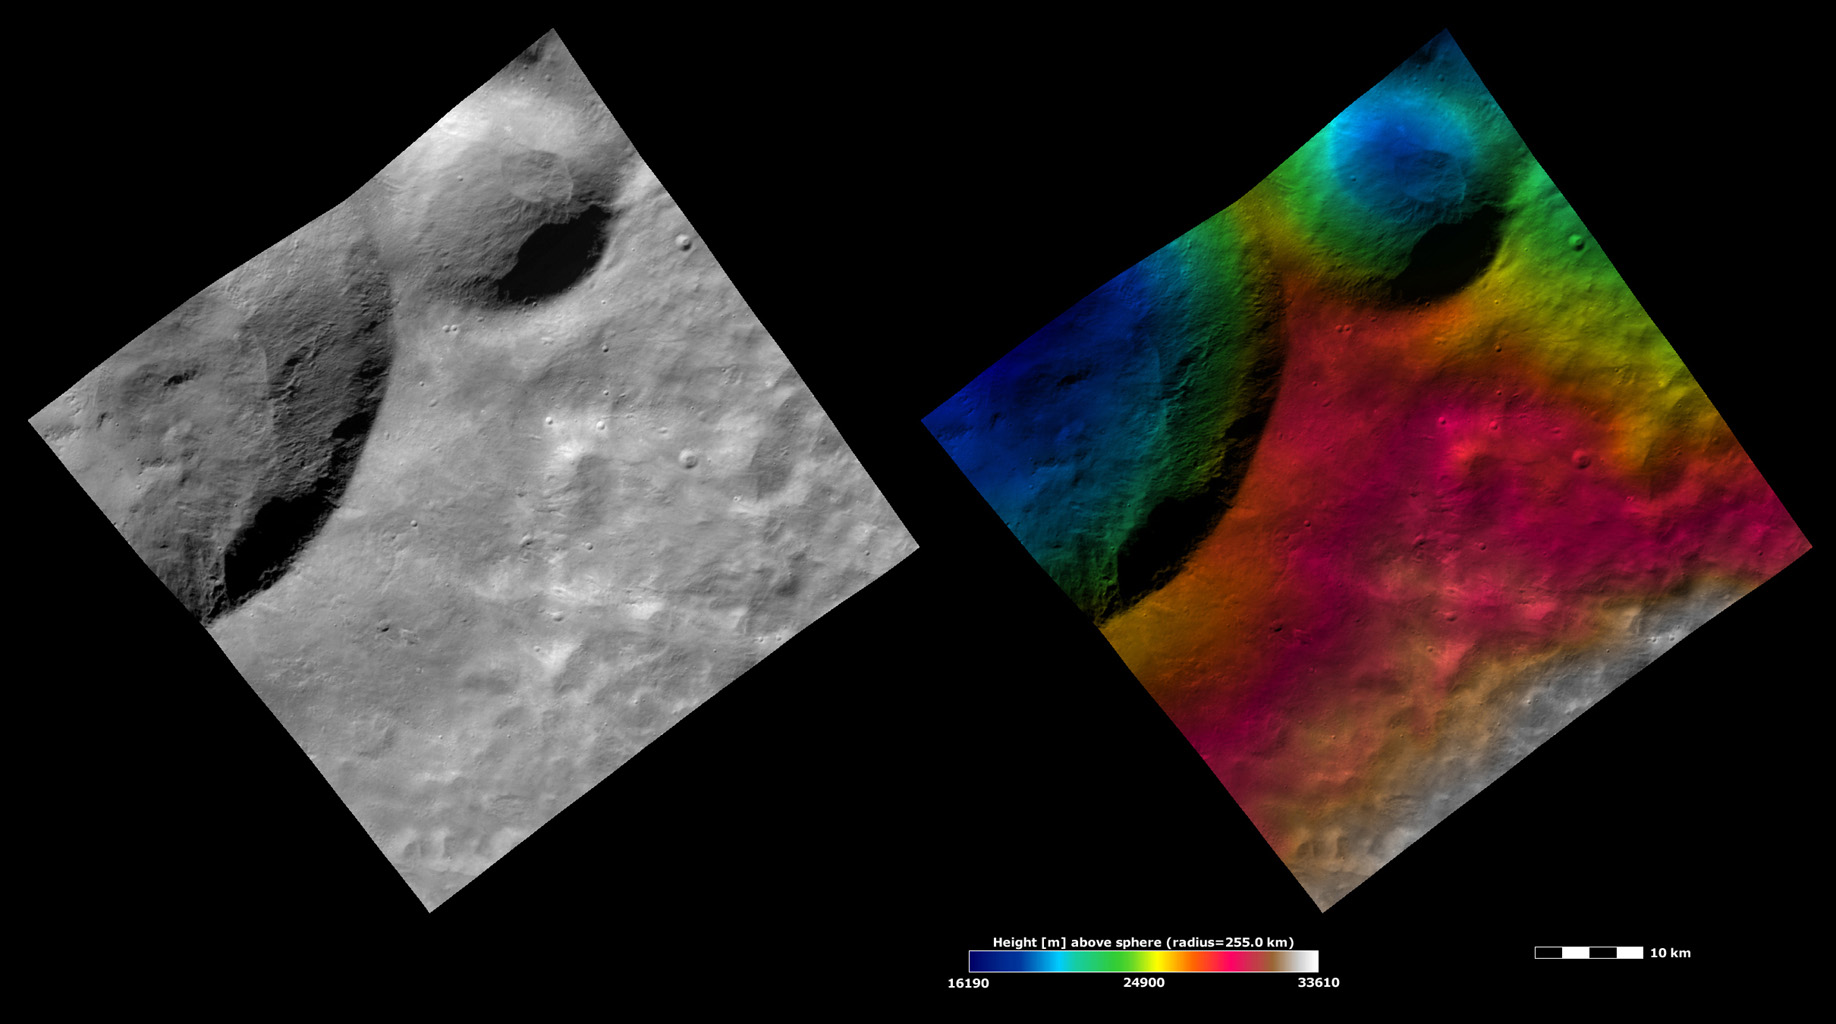 Apparent Brightness and Topography Images of Calpurnia and Minucia